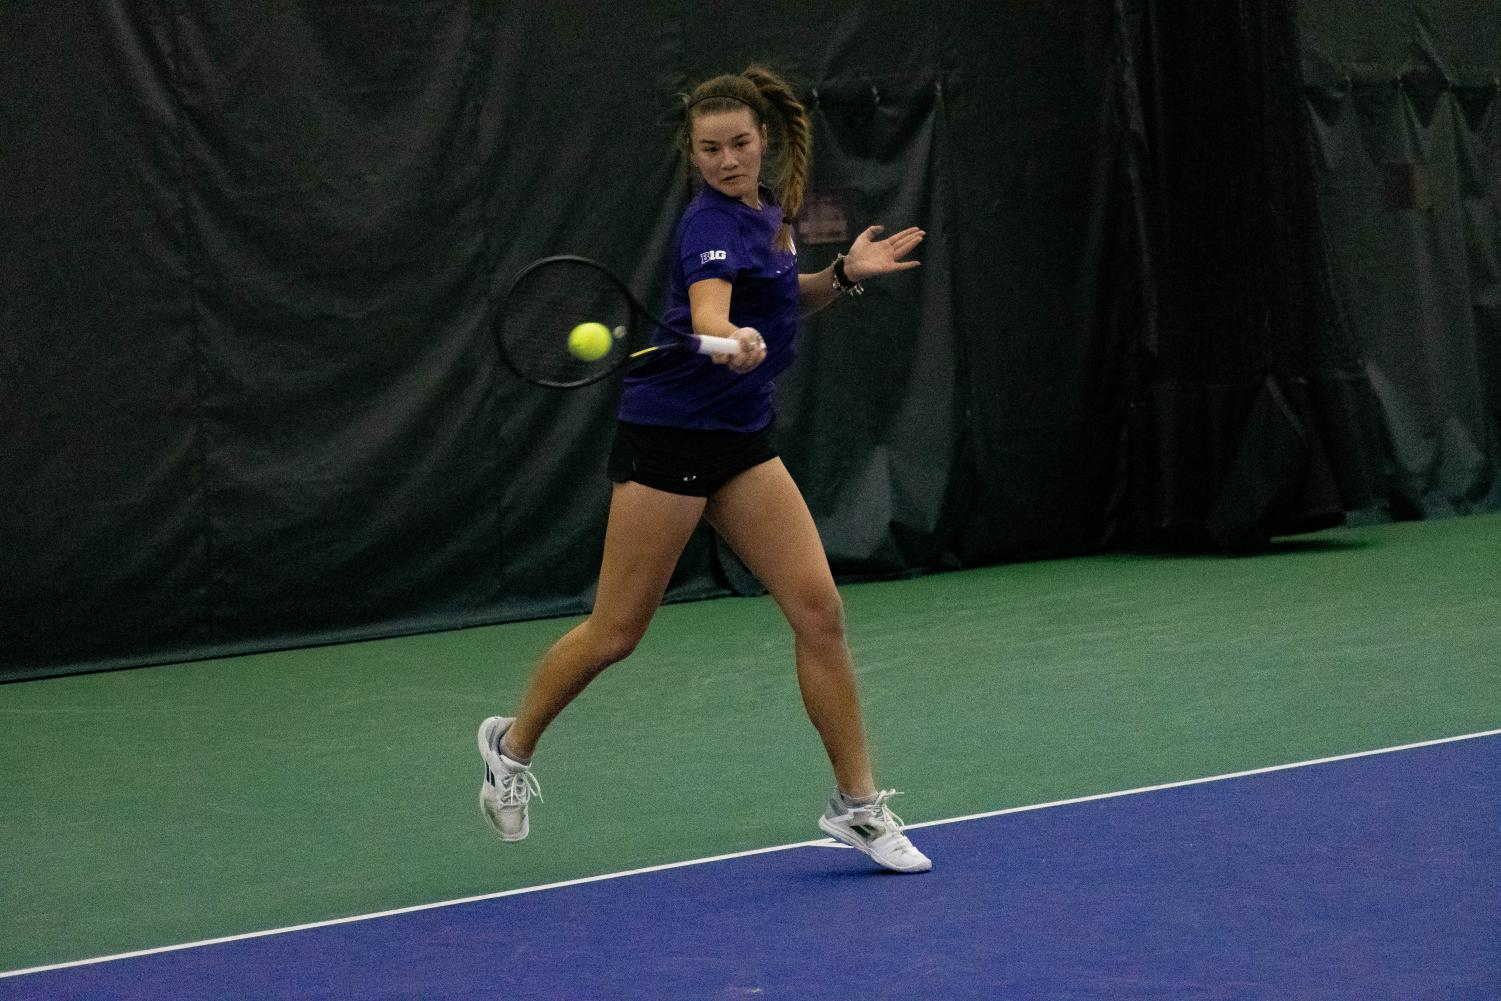 Clarissa Hand hits the ball. The freshman was one of just 10 rookies to earn a bid to this year's NCAA Singles Championships.